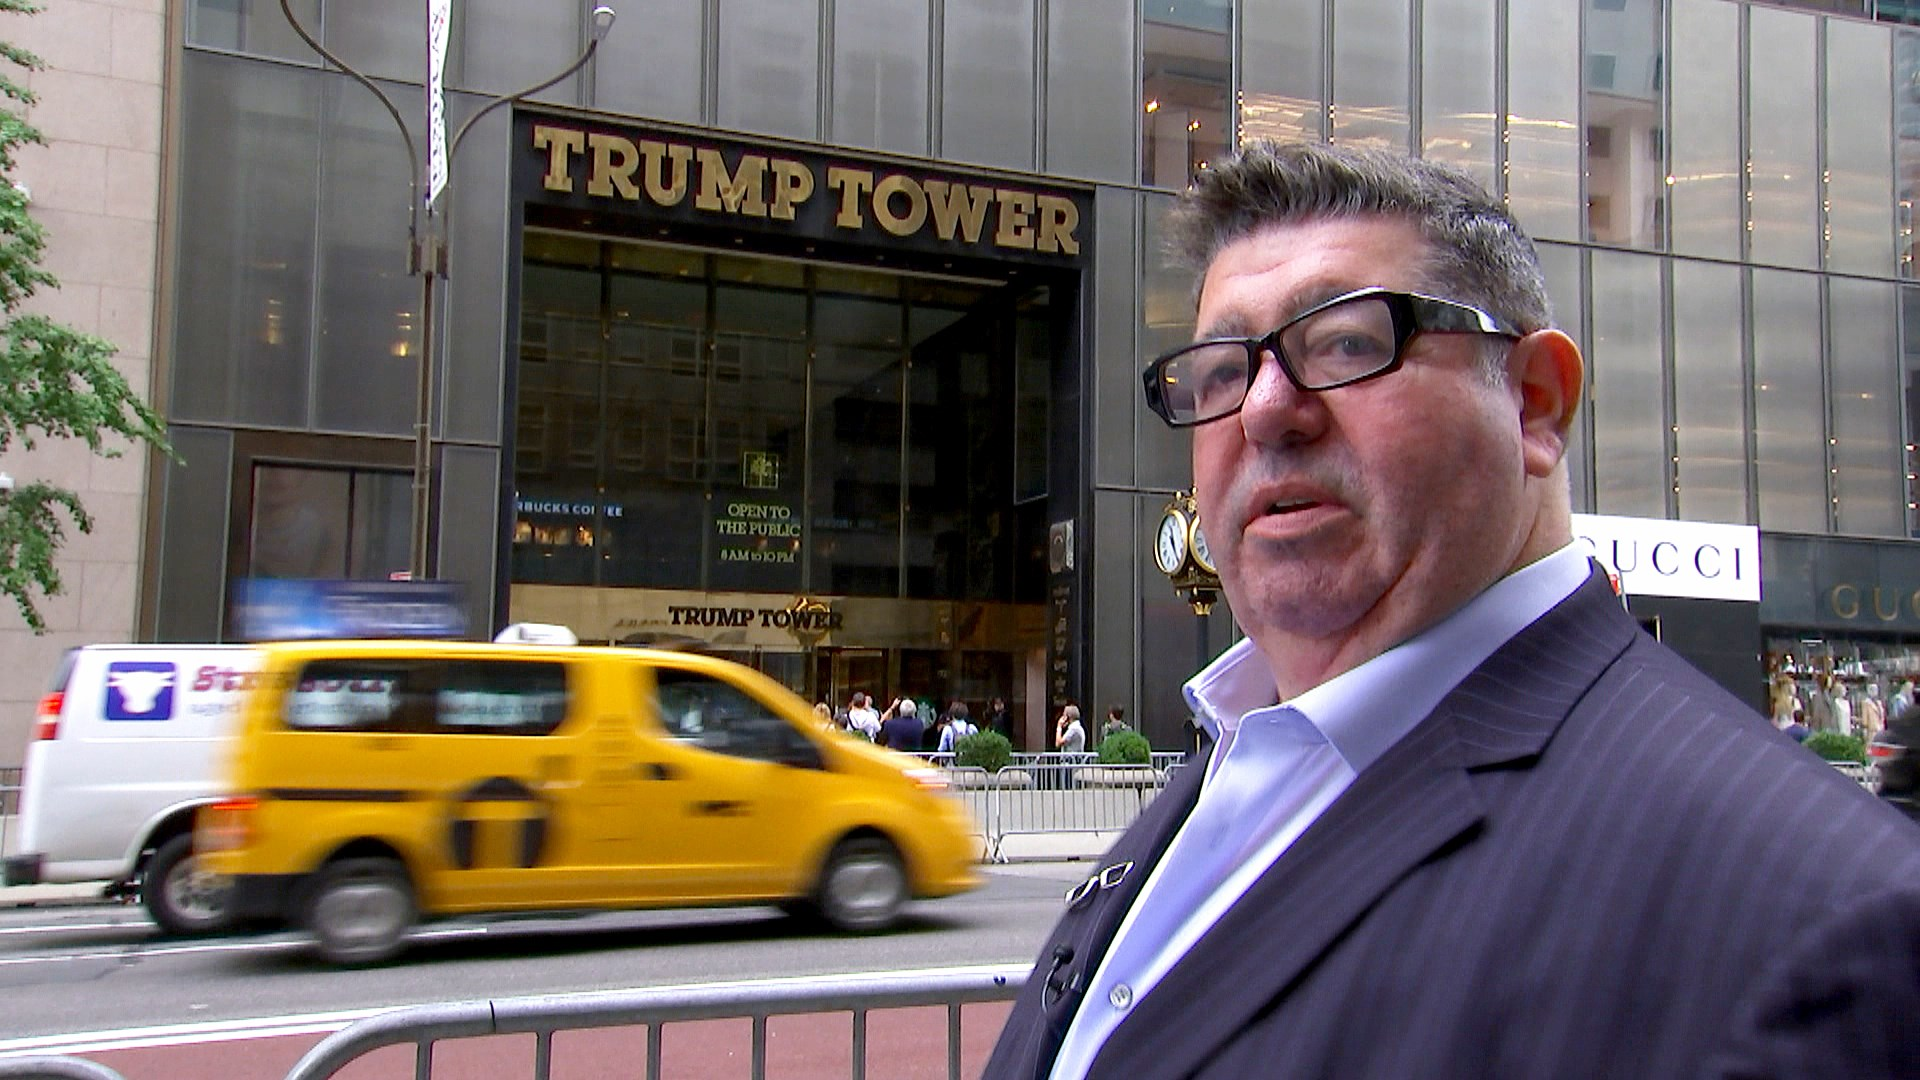 British music publicist Rob Goldstone is seen outside Trump Tower in New York City, the site of a June 2016 meeting he helped set up between Russians and members of the Trump campaign team.